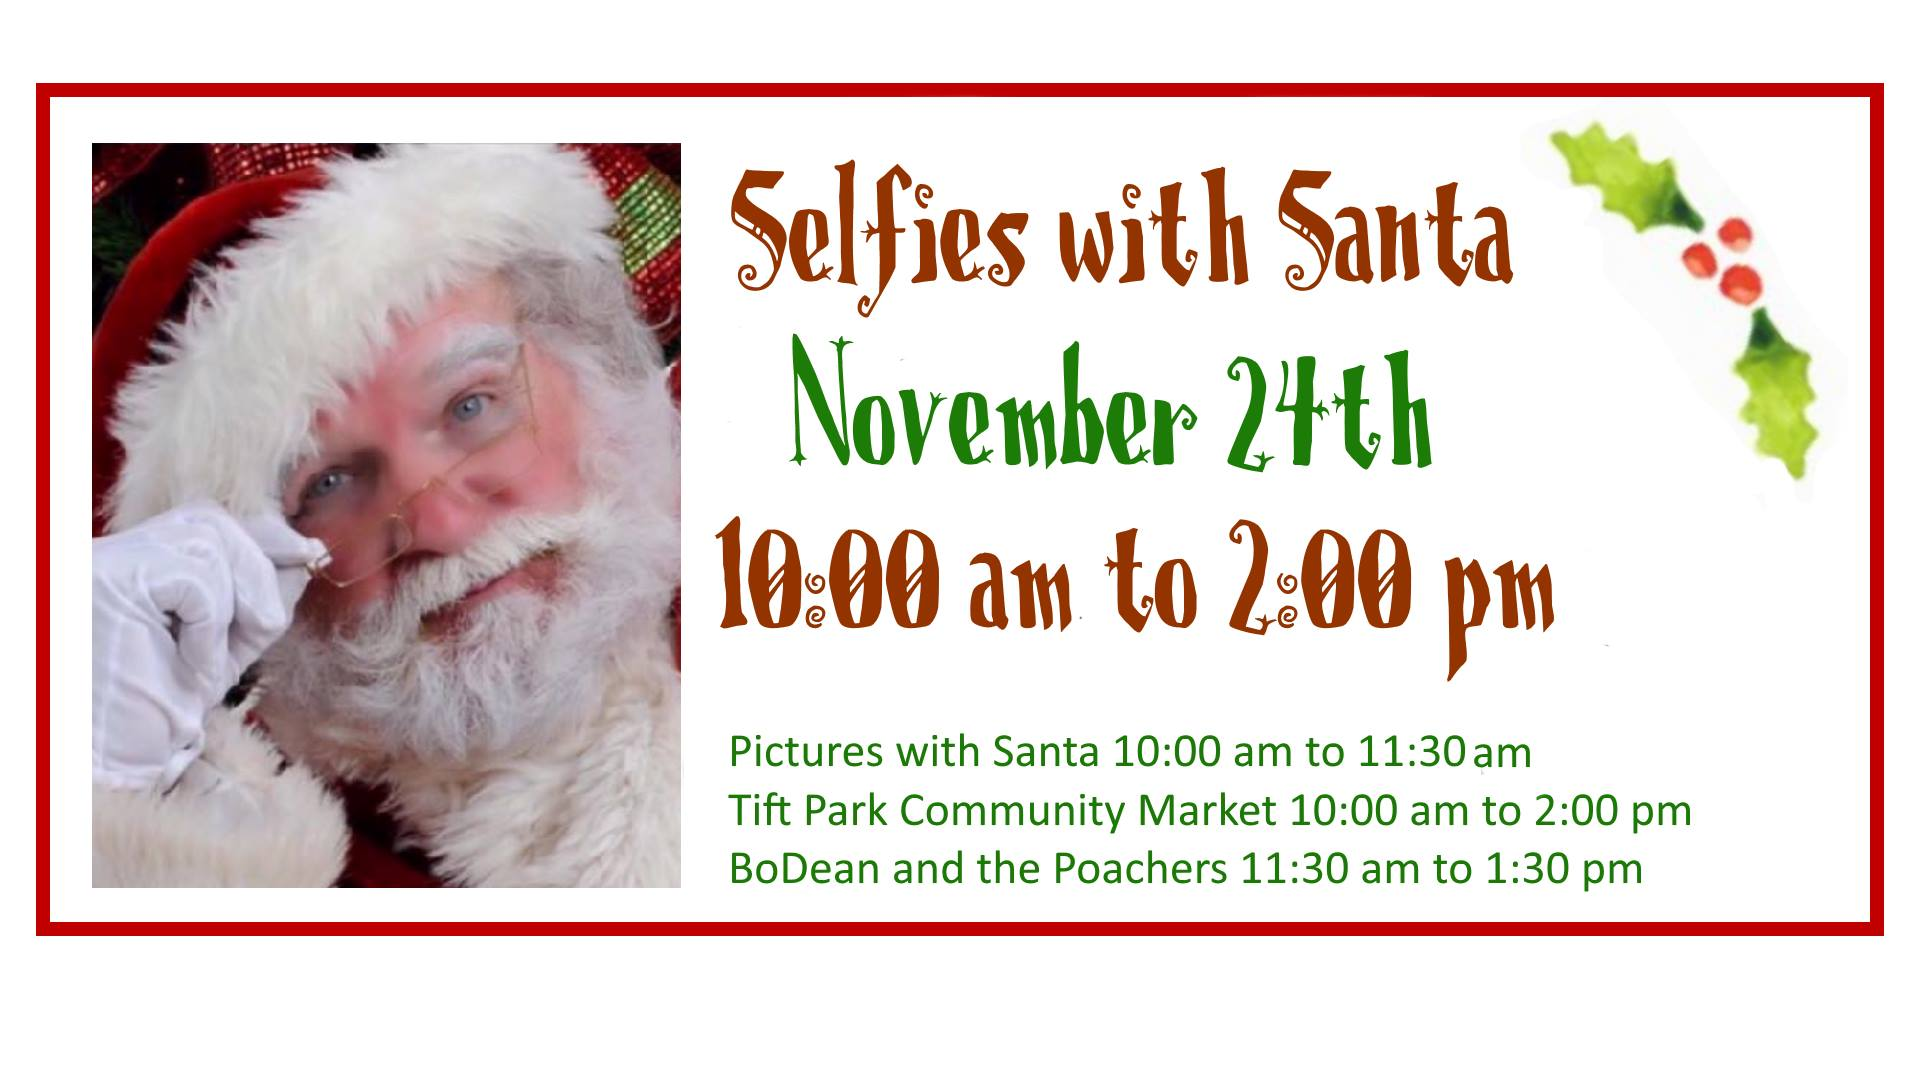 Selfies with Santa